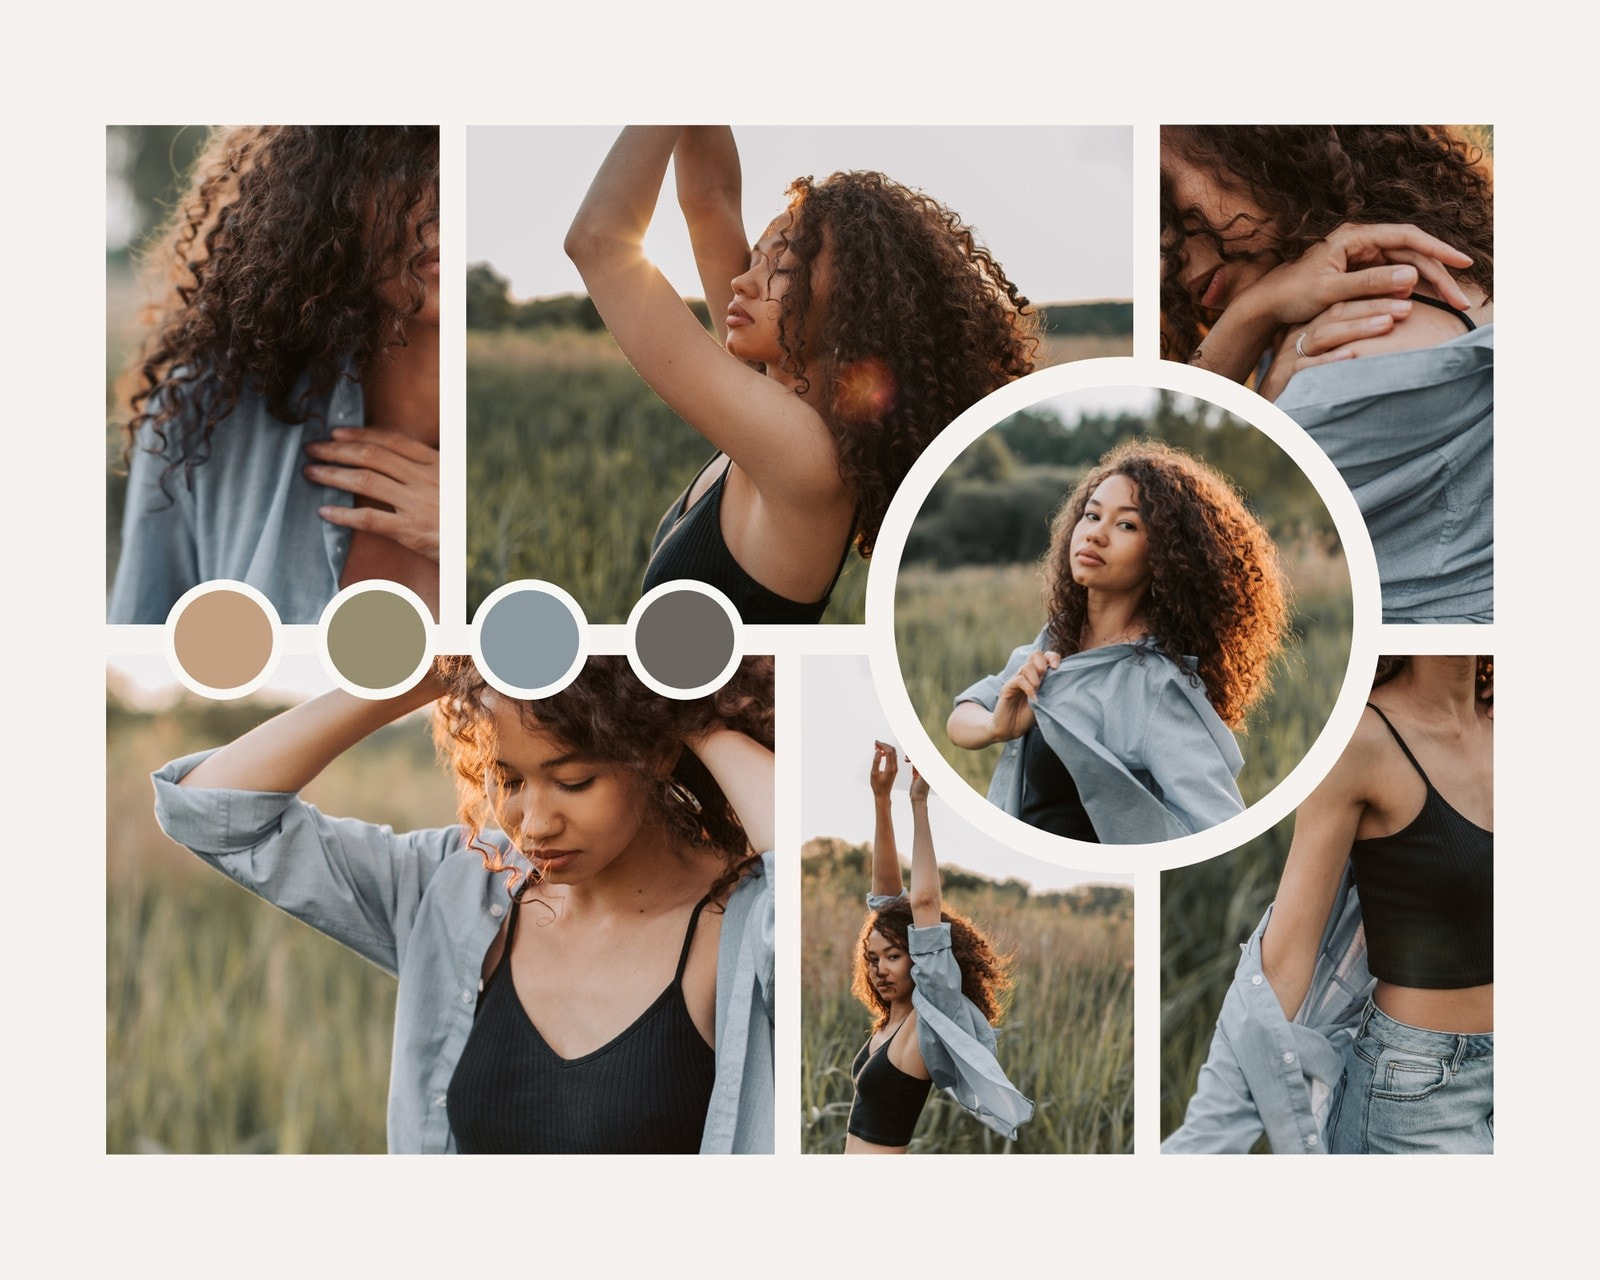 Cool Grey and Brown Clean Grid Fashion Moodboard Photo Collage